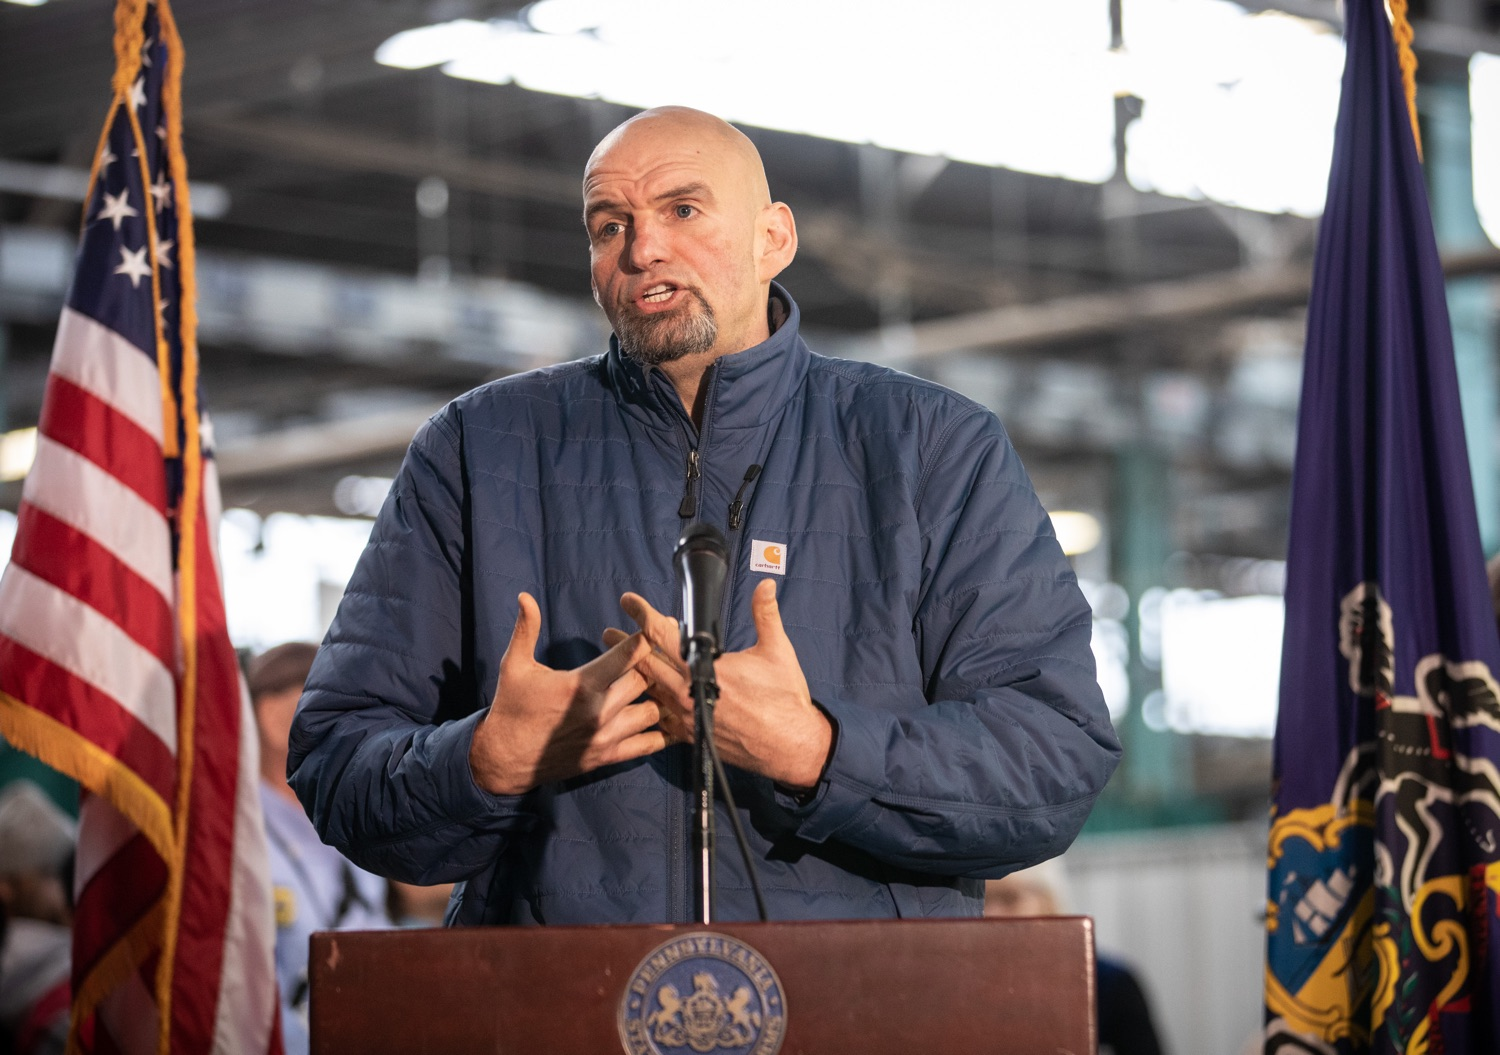 "<a href=""http://filesource.abacast.com/commonwealthofpa/photo/17646_agric_butter_sculpture_dz_016.jpg"" target=""_blank"">⇣ Download Photo<br></a>Lt. Governor John Fetterman speaking at the Pennsylvania Farm Show butter sculpture unveiling.Lt. Governor John Fetterman and Secretary of Agriculture Russell Redding today unveiled the 2020 Pennsylvania Farm Show butter sculpture, carved from a half-ton of butter depicting three of Pennsylvanias beloved professional sports mascots: Philadelphia Flyers Gritty, Philadelphia Eagles Swoop, and Pittsburgh Steelers Steely McBeam celebrating with a spread of Pennsylvania dairy products. The sculpture, a long-time Farm Show staple, encourages Pennsylvanians to be a fan of Pennsylvania dairy and give a cheer to the more than 6,200 dairy farmers in the commonwealth.  Harrisburg, PA  January 2, 2020"